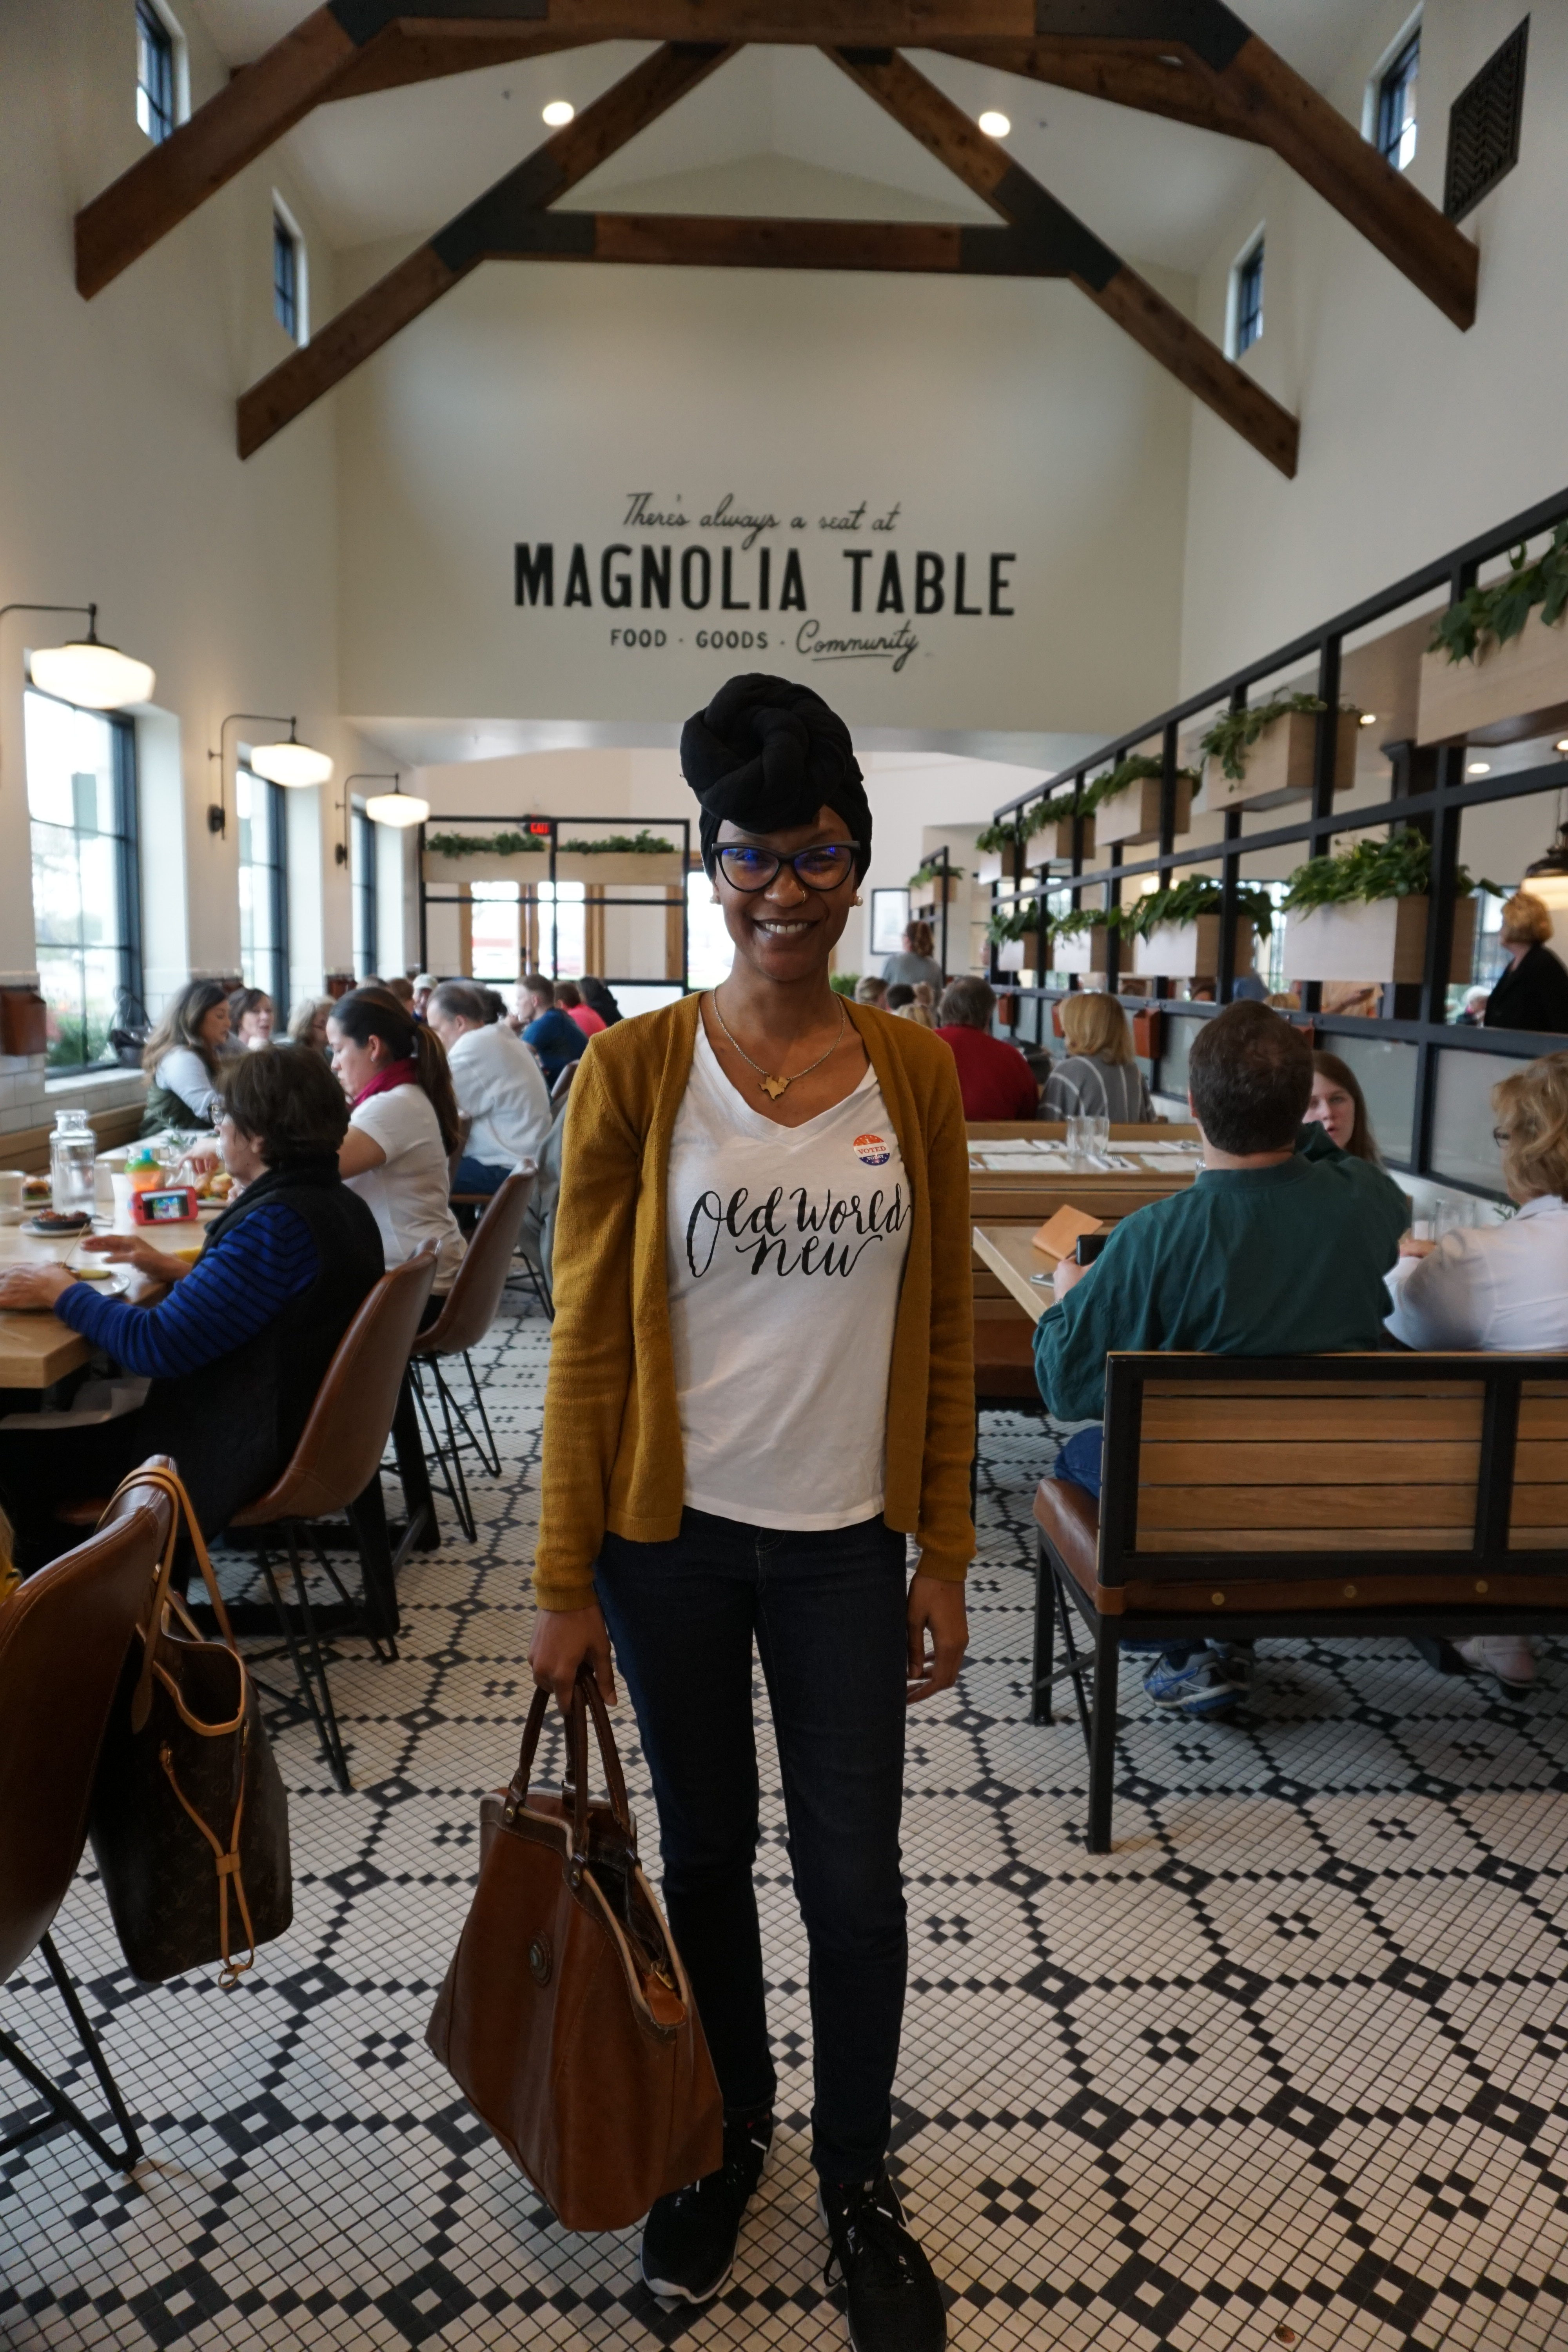 Destination Waco TX For Hours Old World New - Magnolia table restaurant waco tx